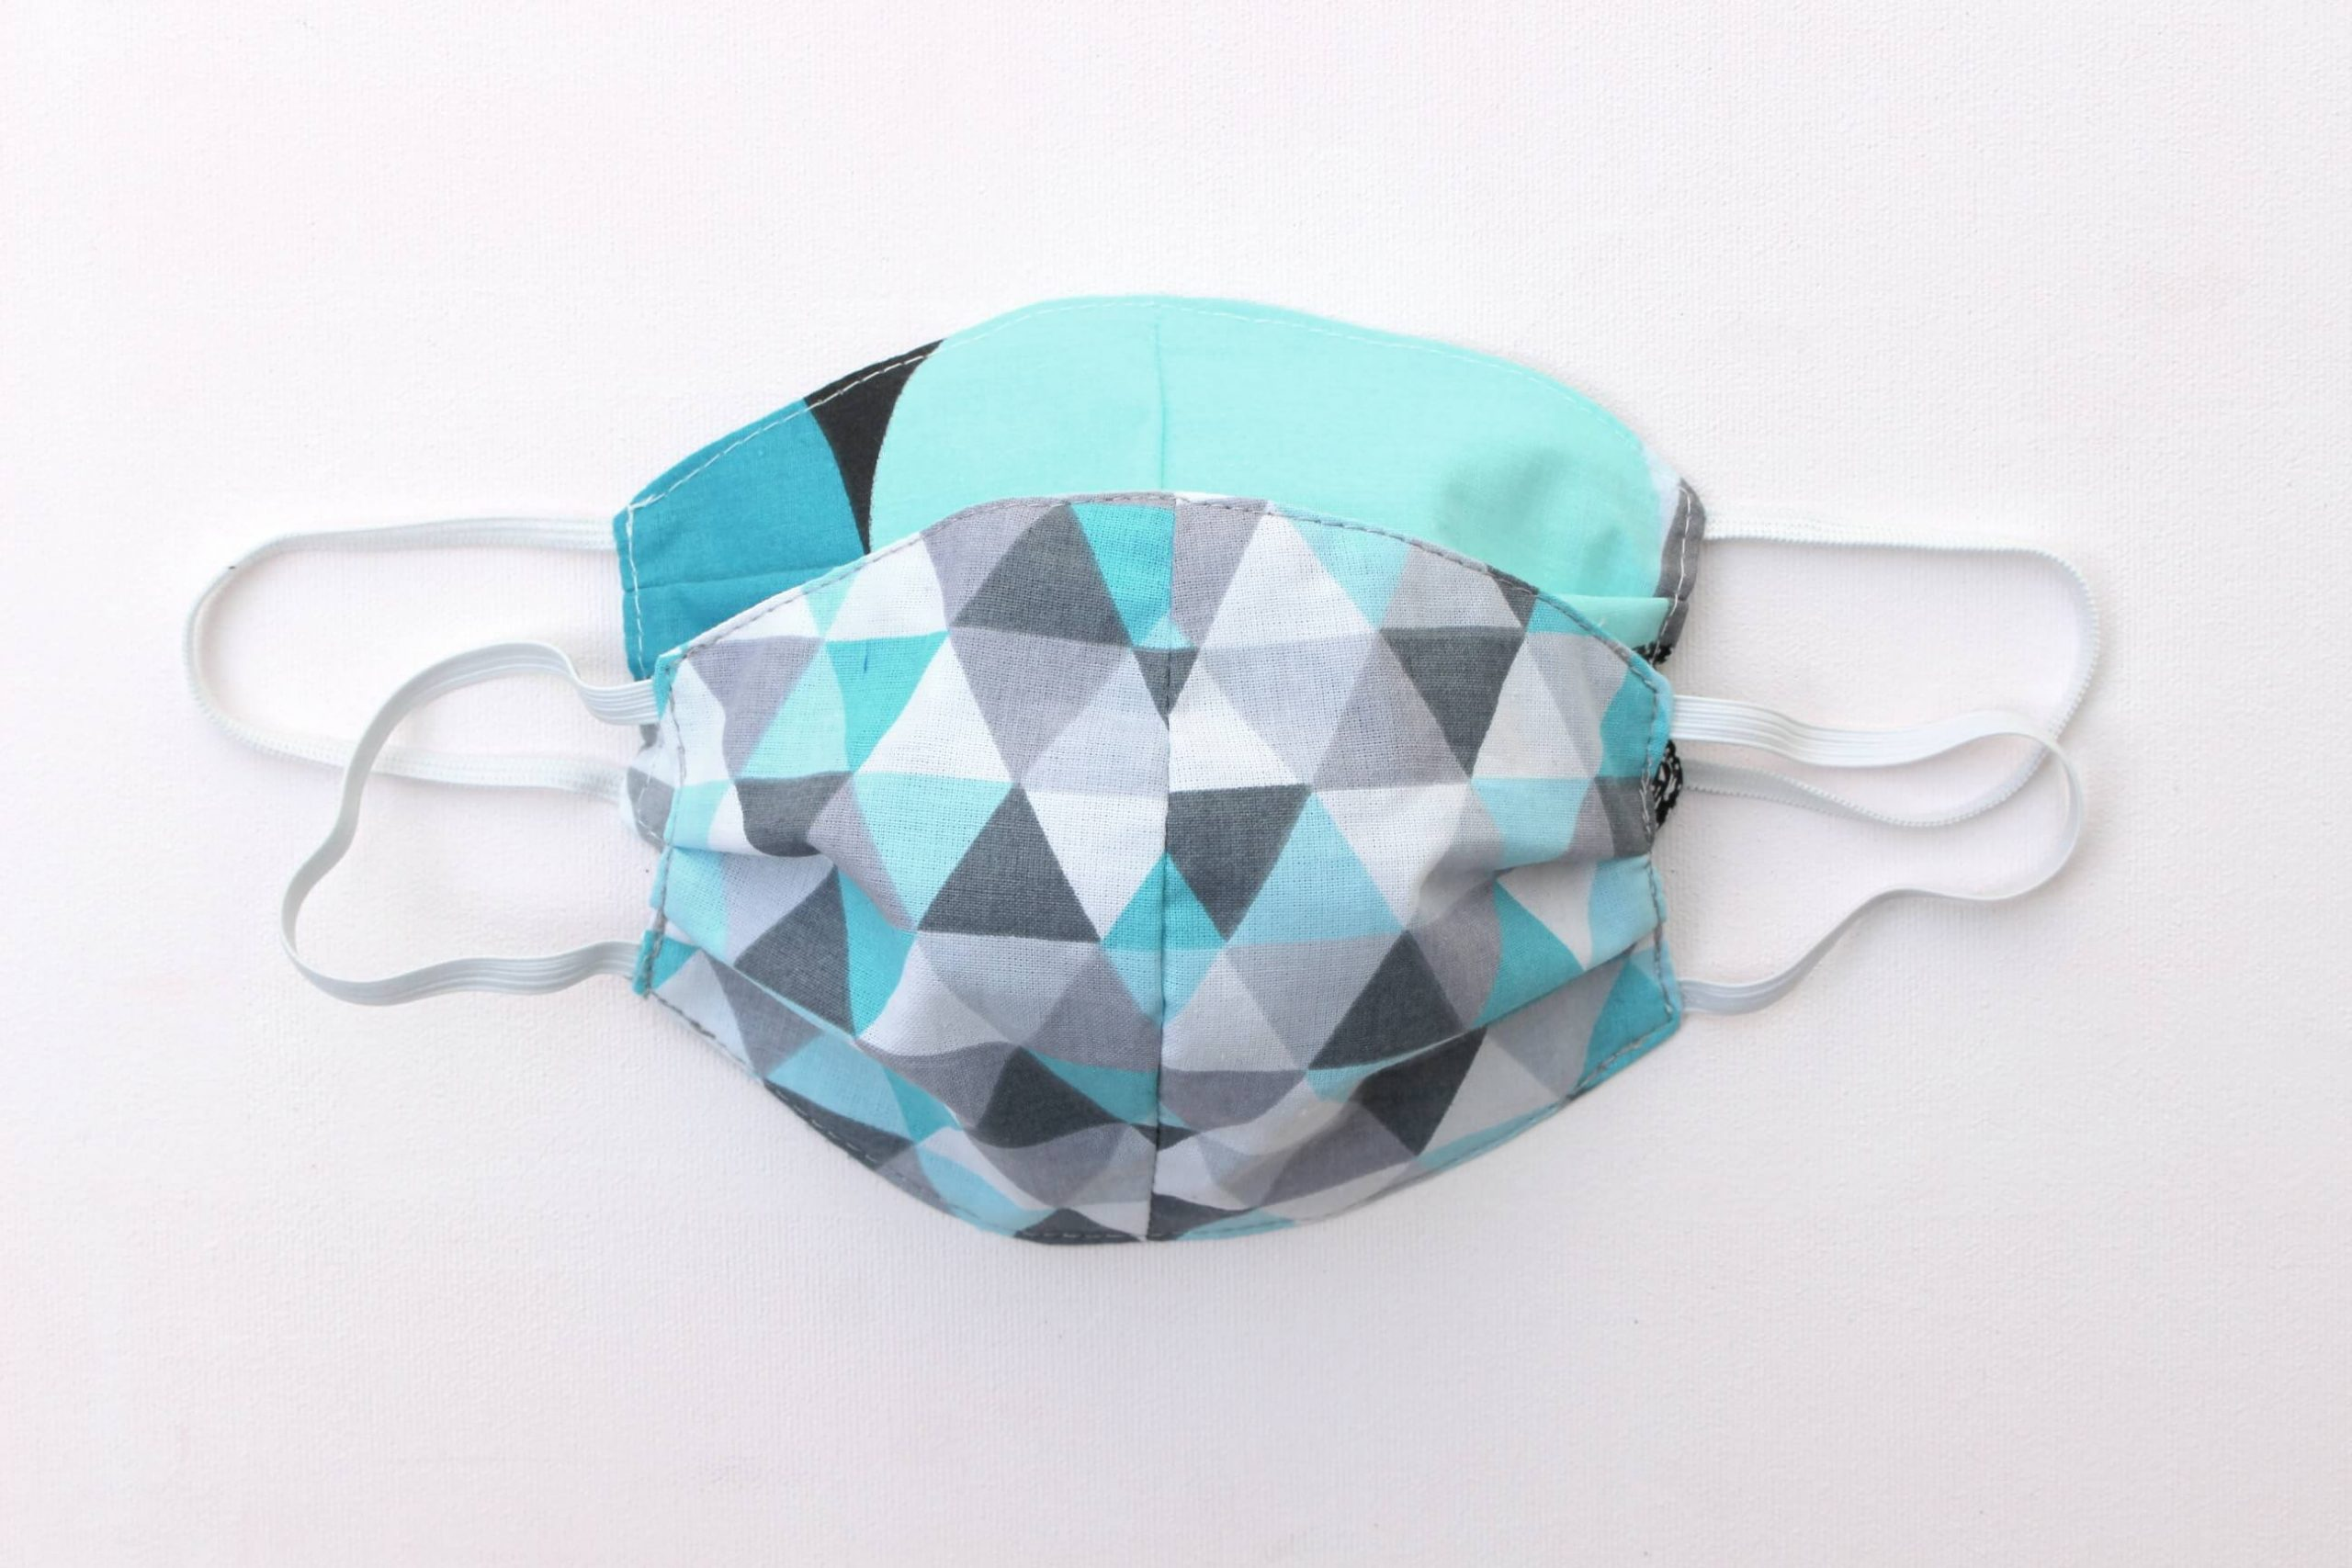 Mana Mana 1 scaled - Beautiful design from Pomorskie: face masks from local designers